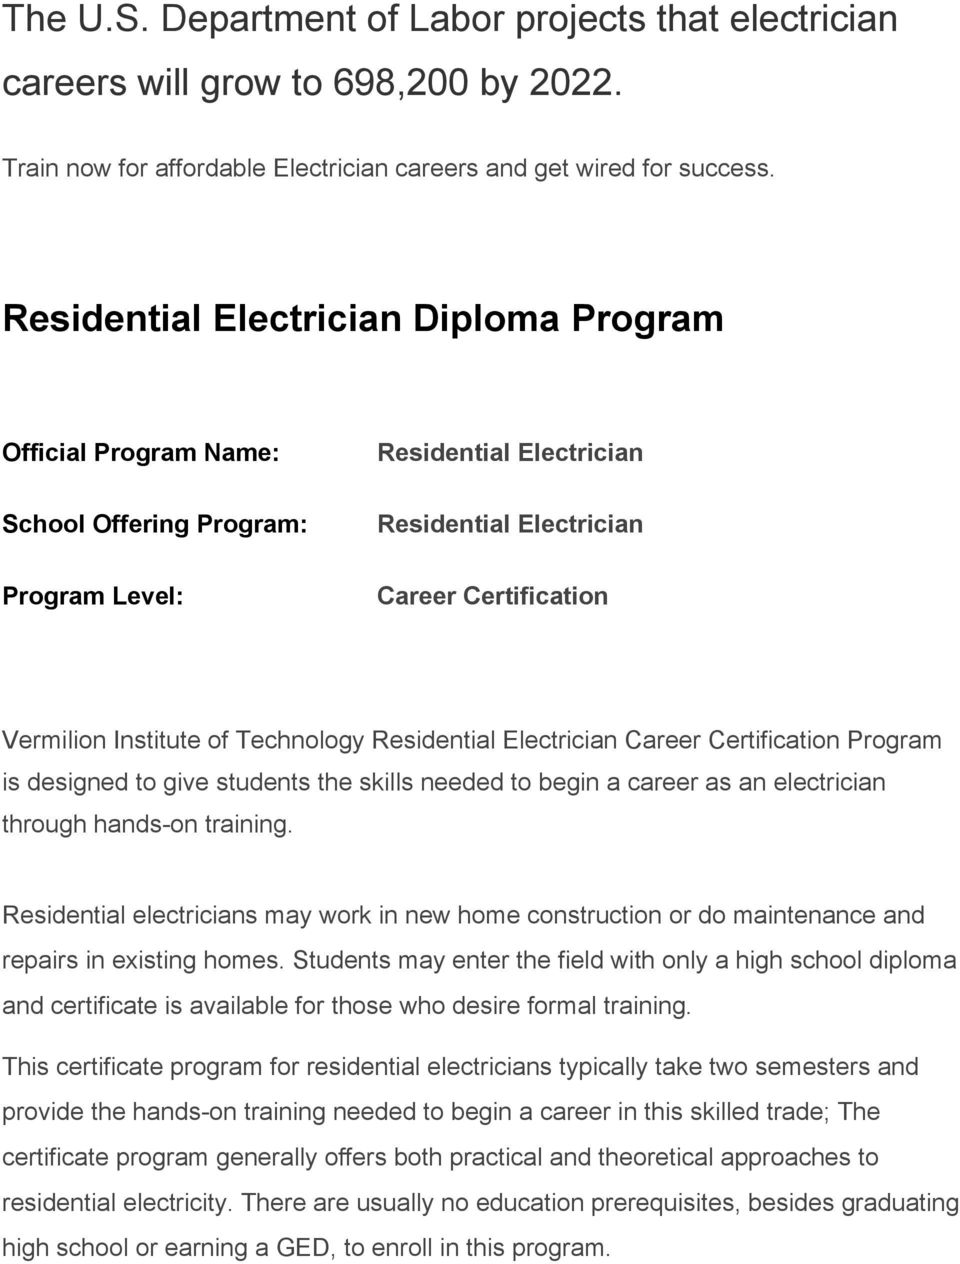 Technology Residential Electrician Career Certification Program is designed to give students the skills needed to begin a career as an electrician through hands on training.